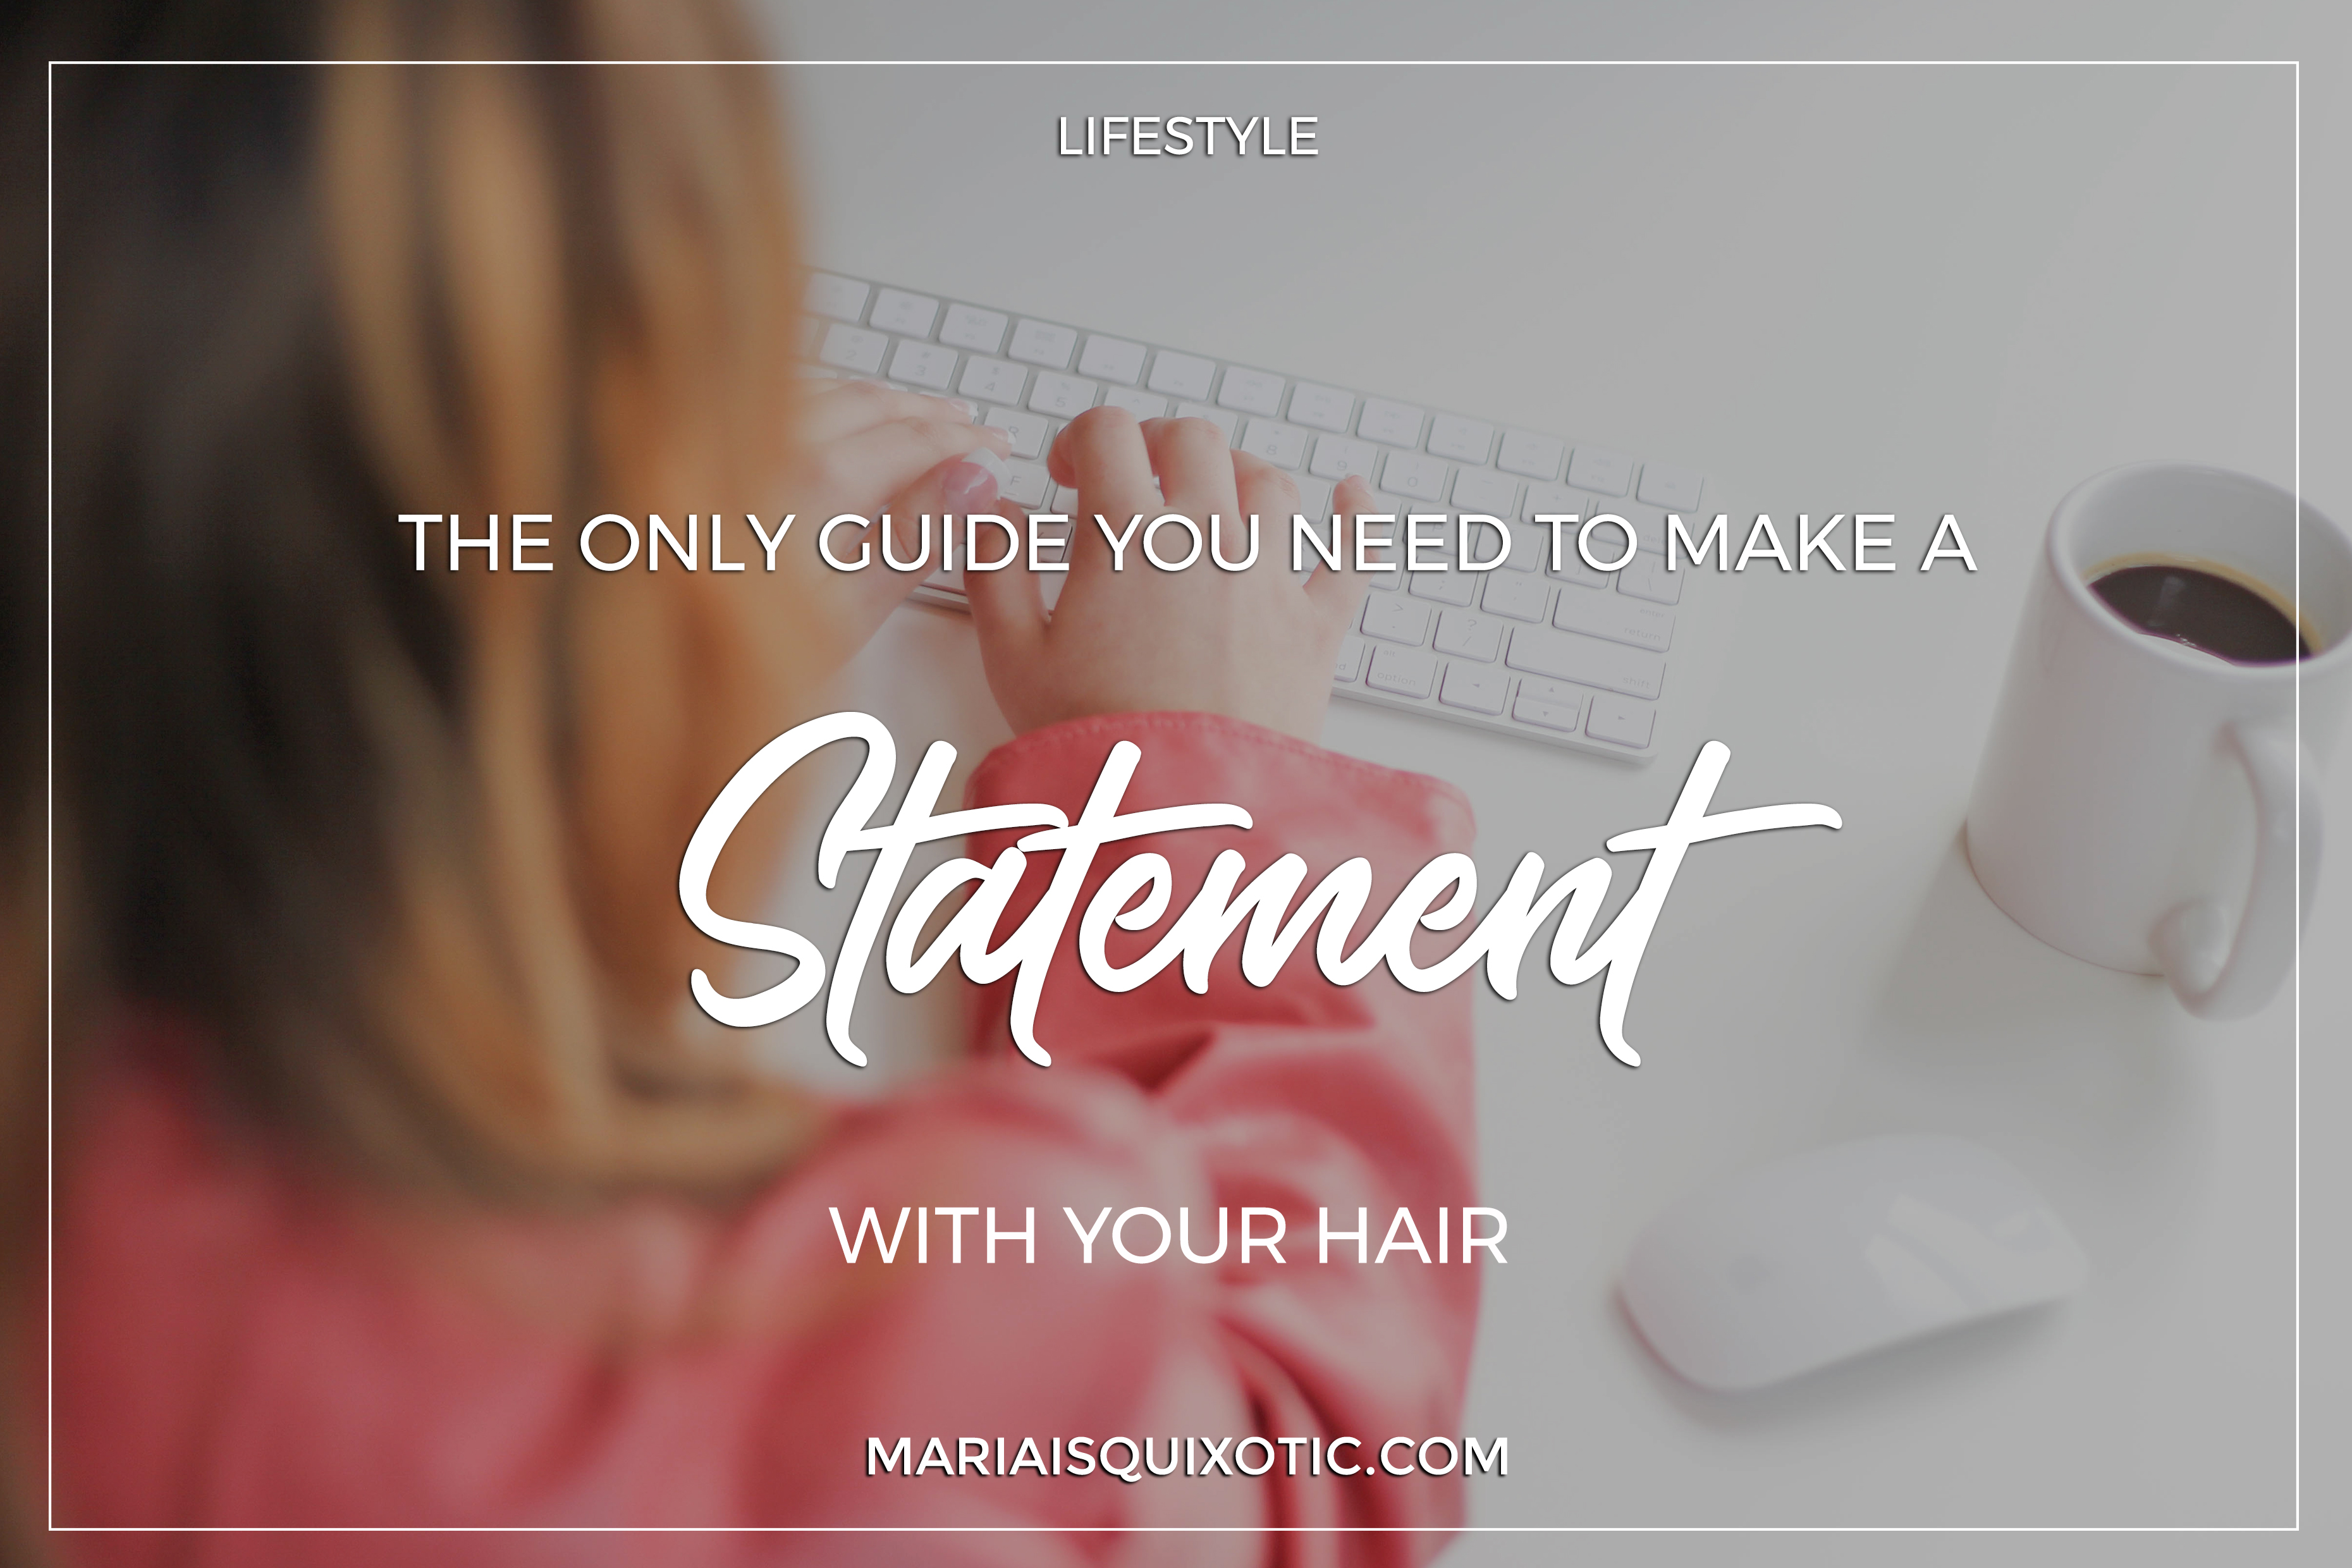 The Only Guide You Need To Make A Statement With Your Hair